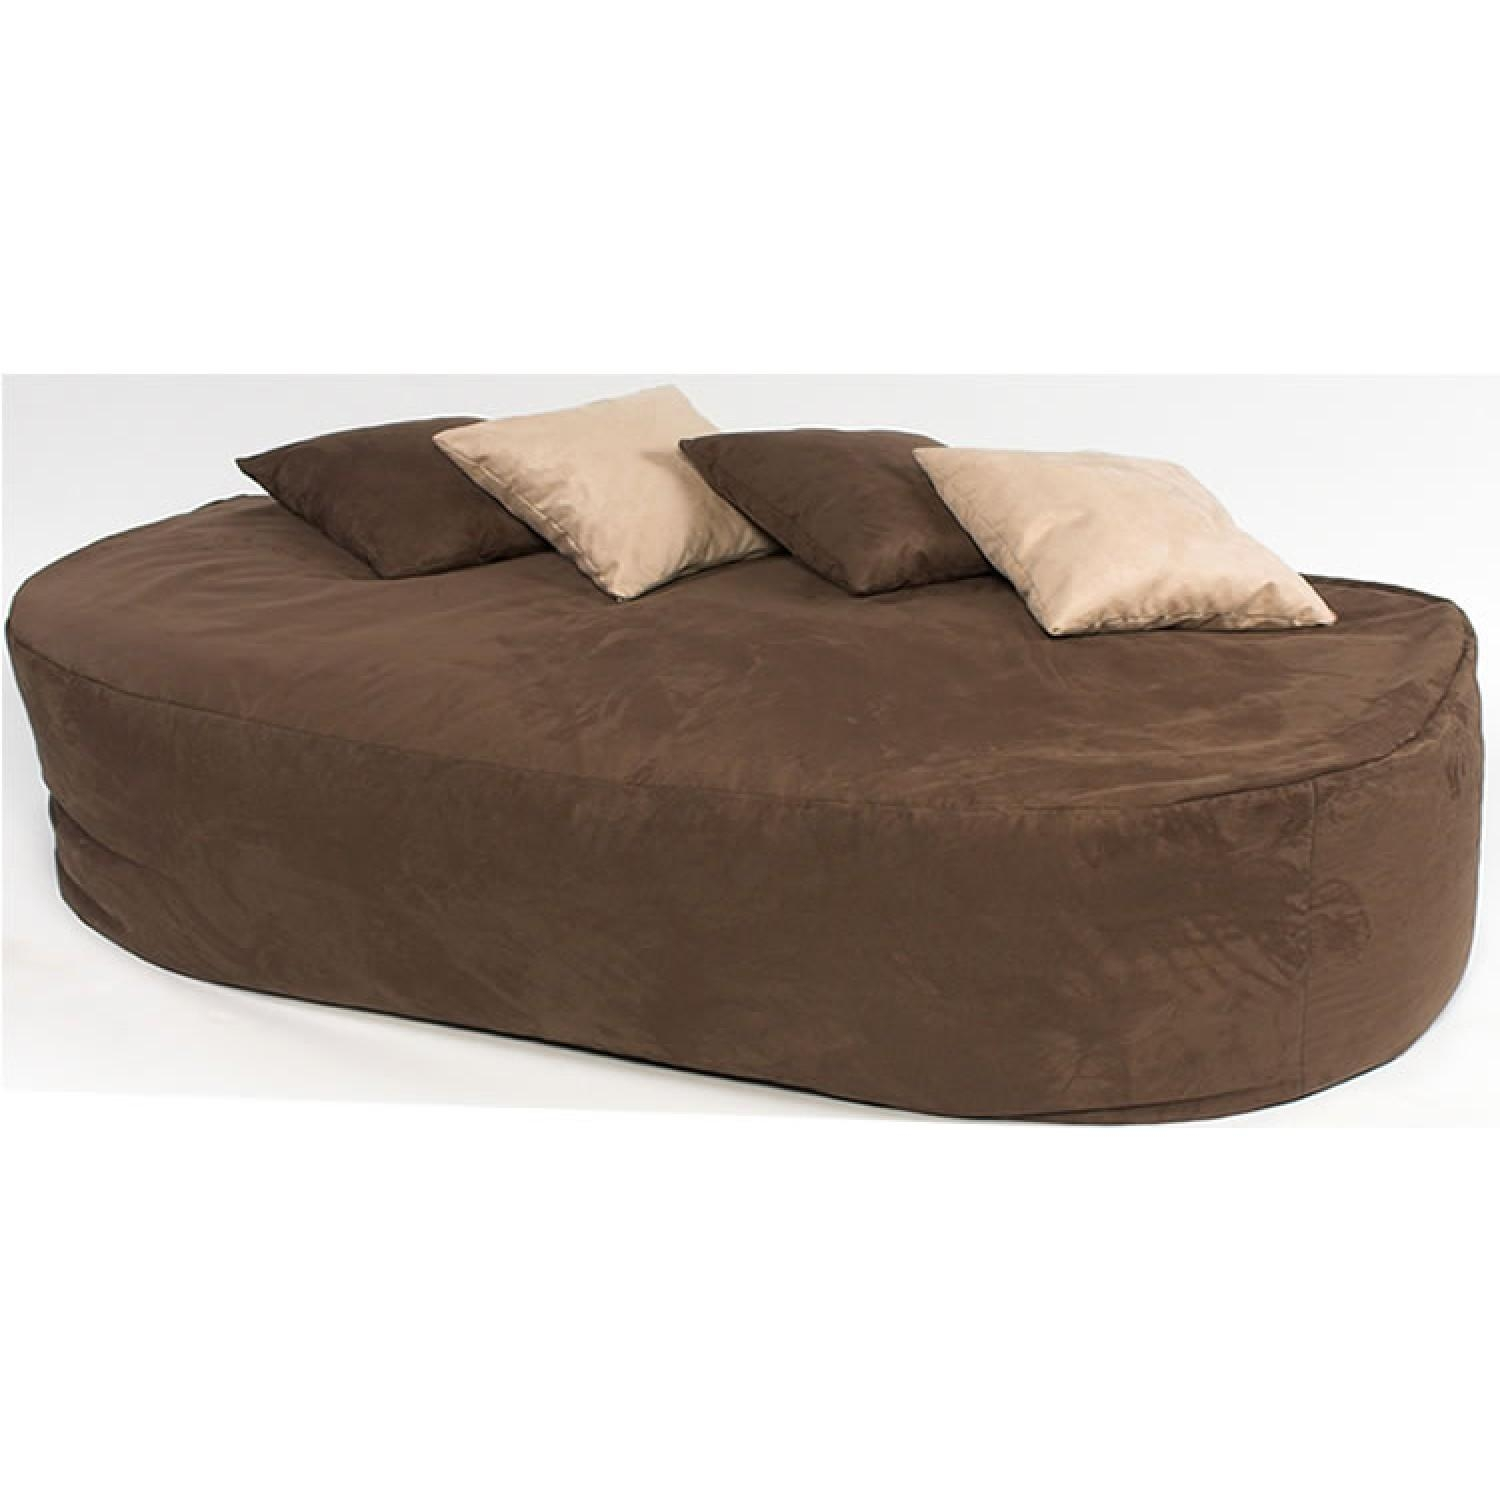 6 Ft Bed Sofa Faux Suede for Faux Suede Sofa Bed